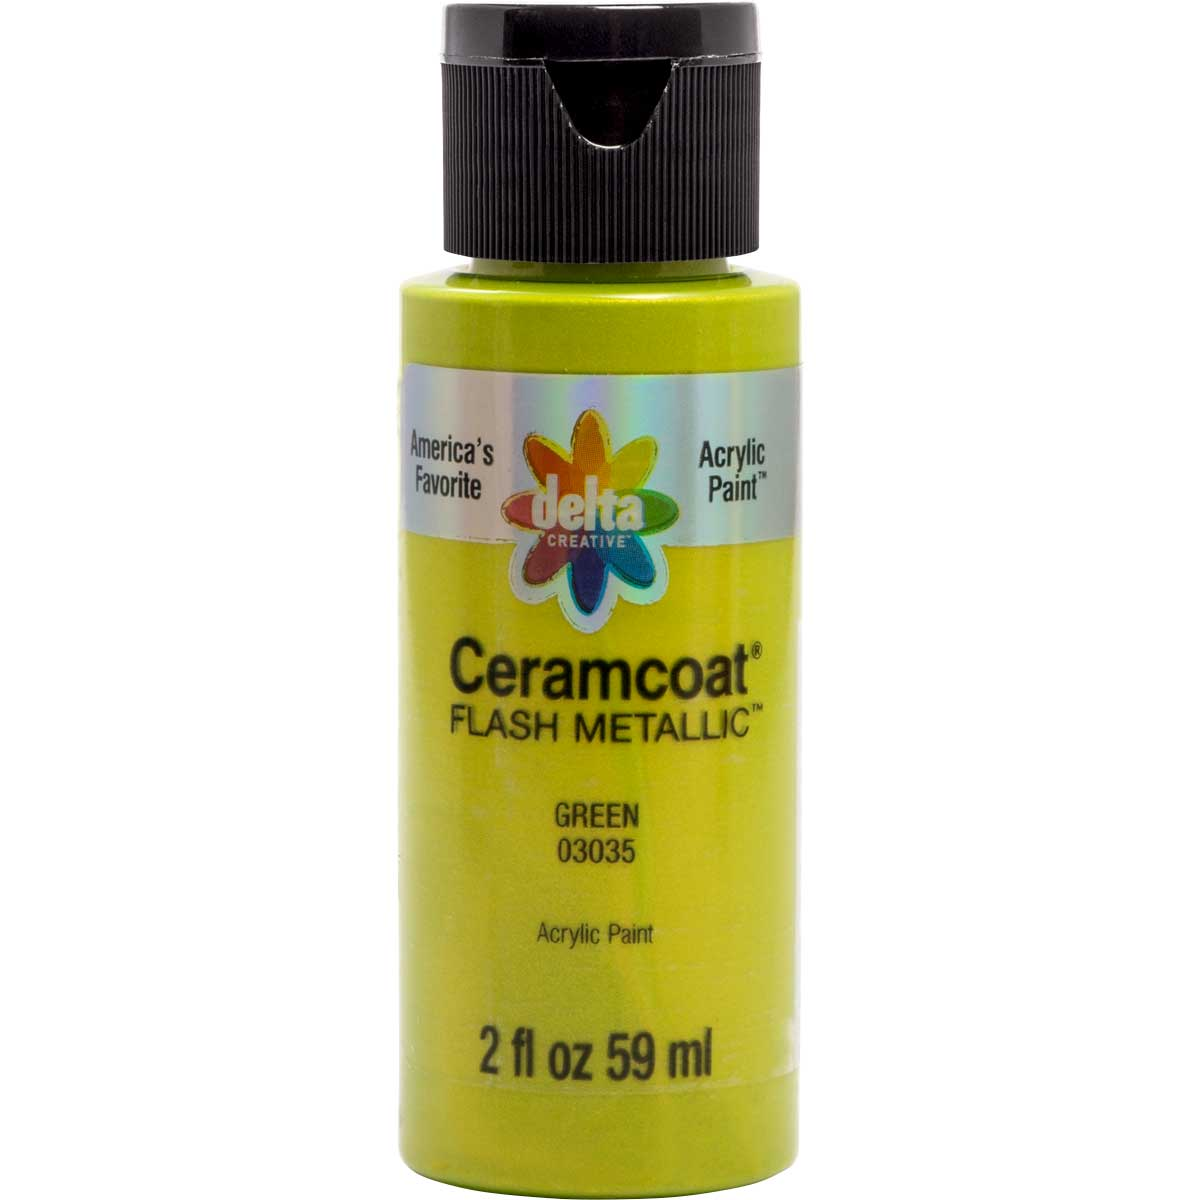 Delta Ceramcoat ® Acrylic Paint - Flash Metallic Green, 2 oz.